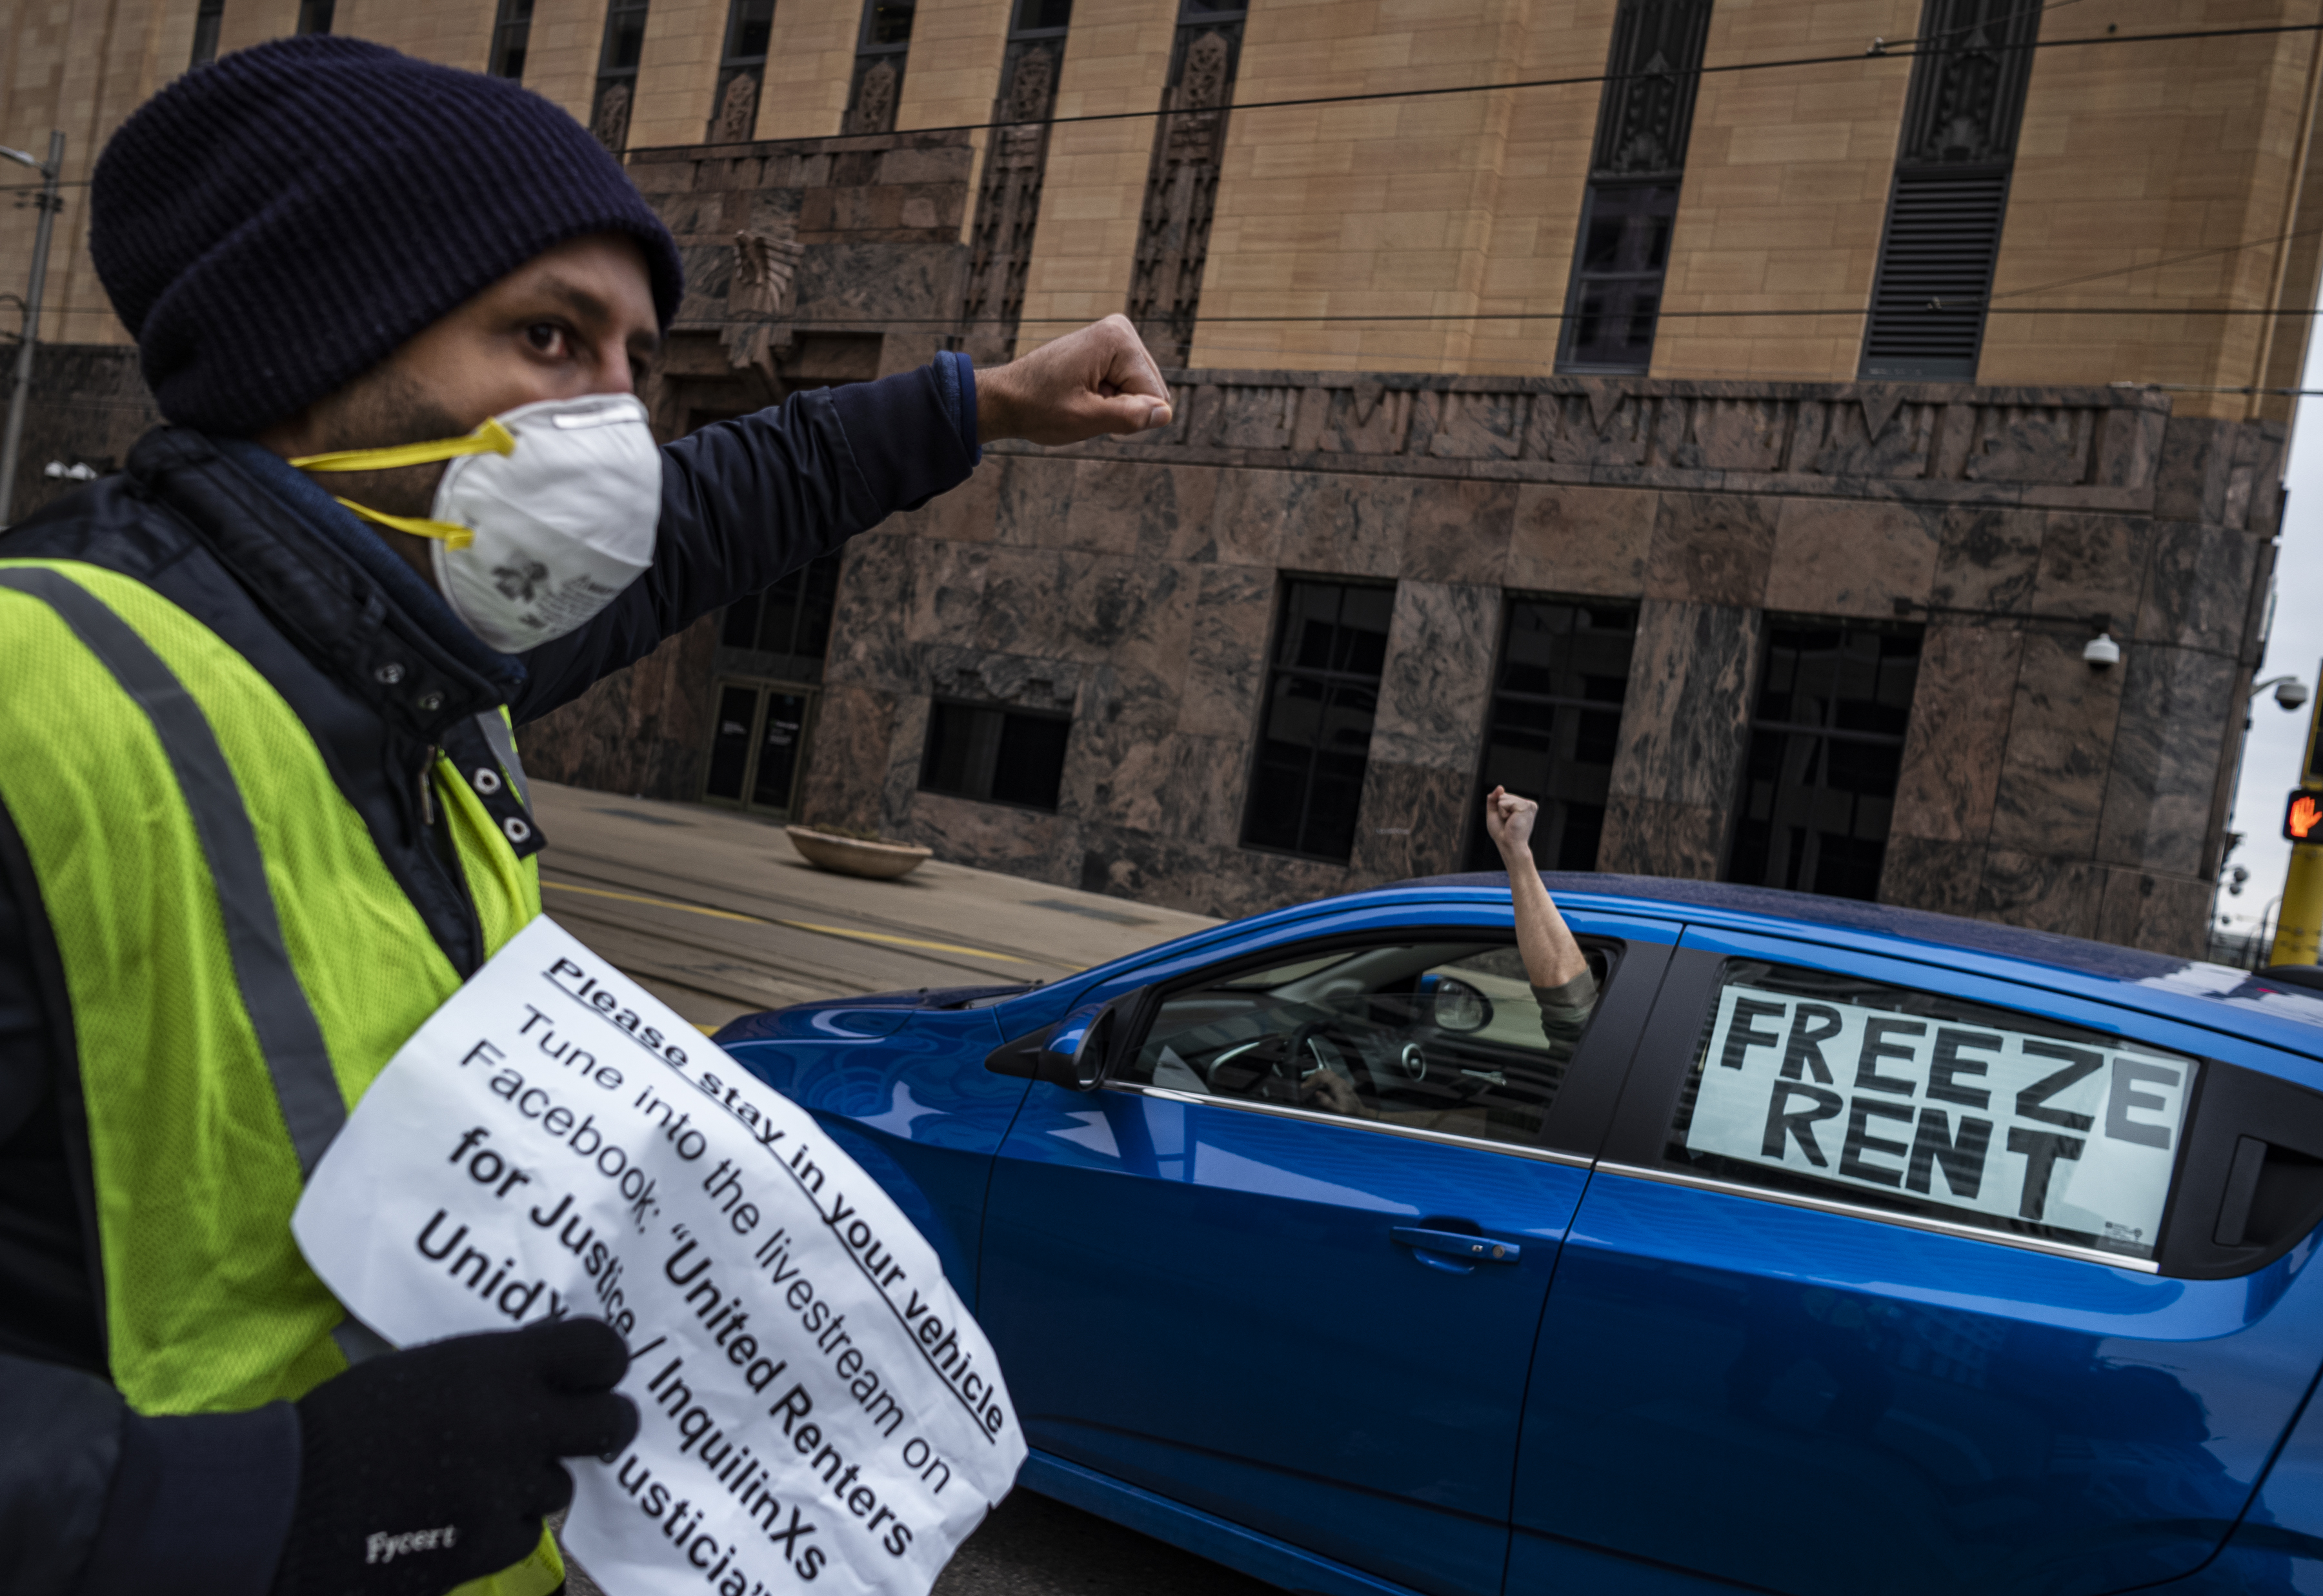 Tenant rights activist Nathan Sirdar helps lead a protest calling for relief for renters and homeowners during the coronavirus-related financial crisis, in Minneapolis, Minnesota on April 8, 2020.